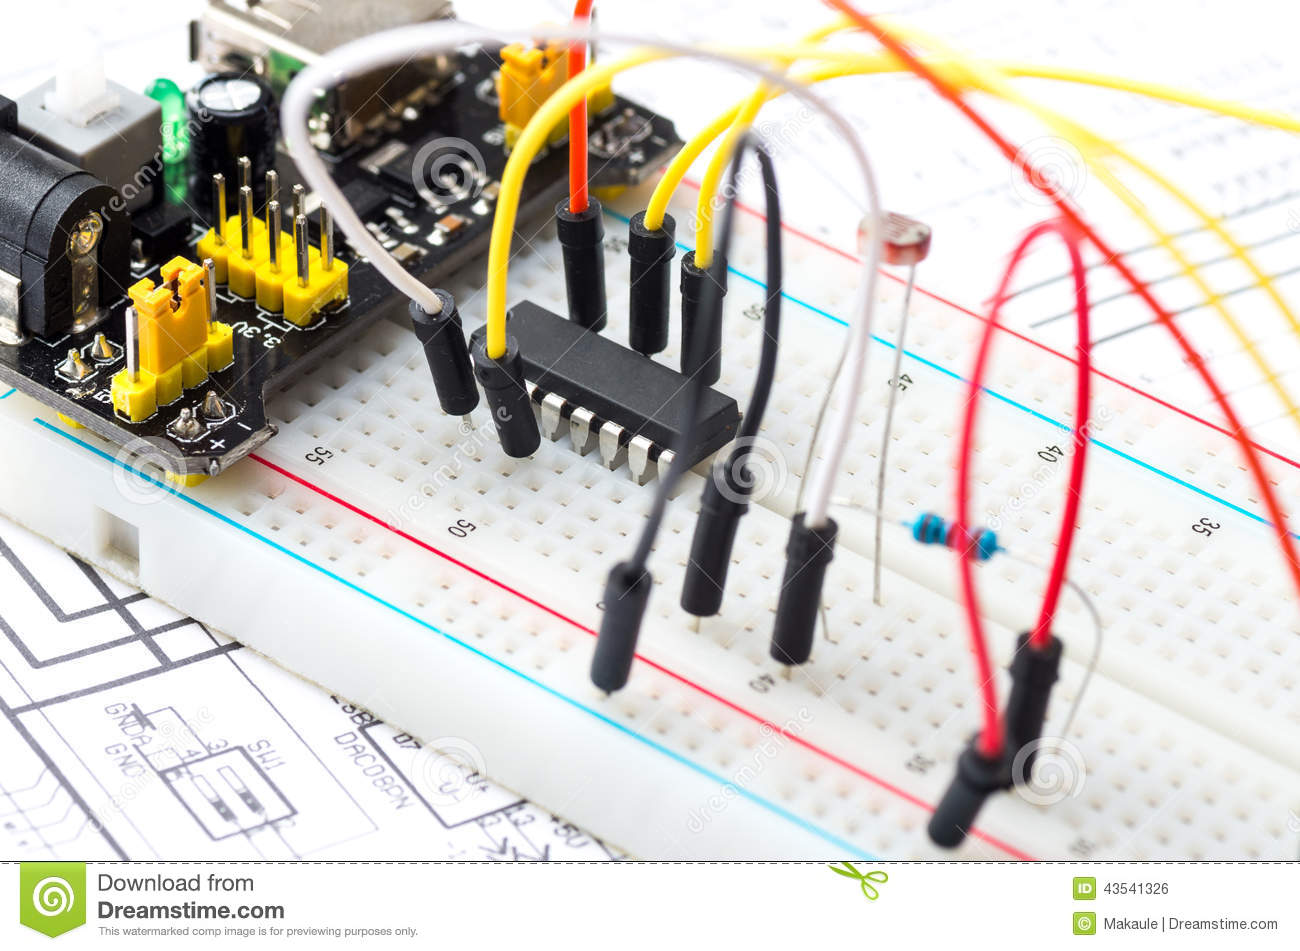 Breadboard Style Prototyping Board For Diy Electronics Auto 17pcs Kit Pcb Printed Circuit Prototype Stock Photo